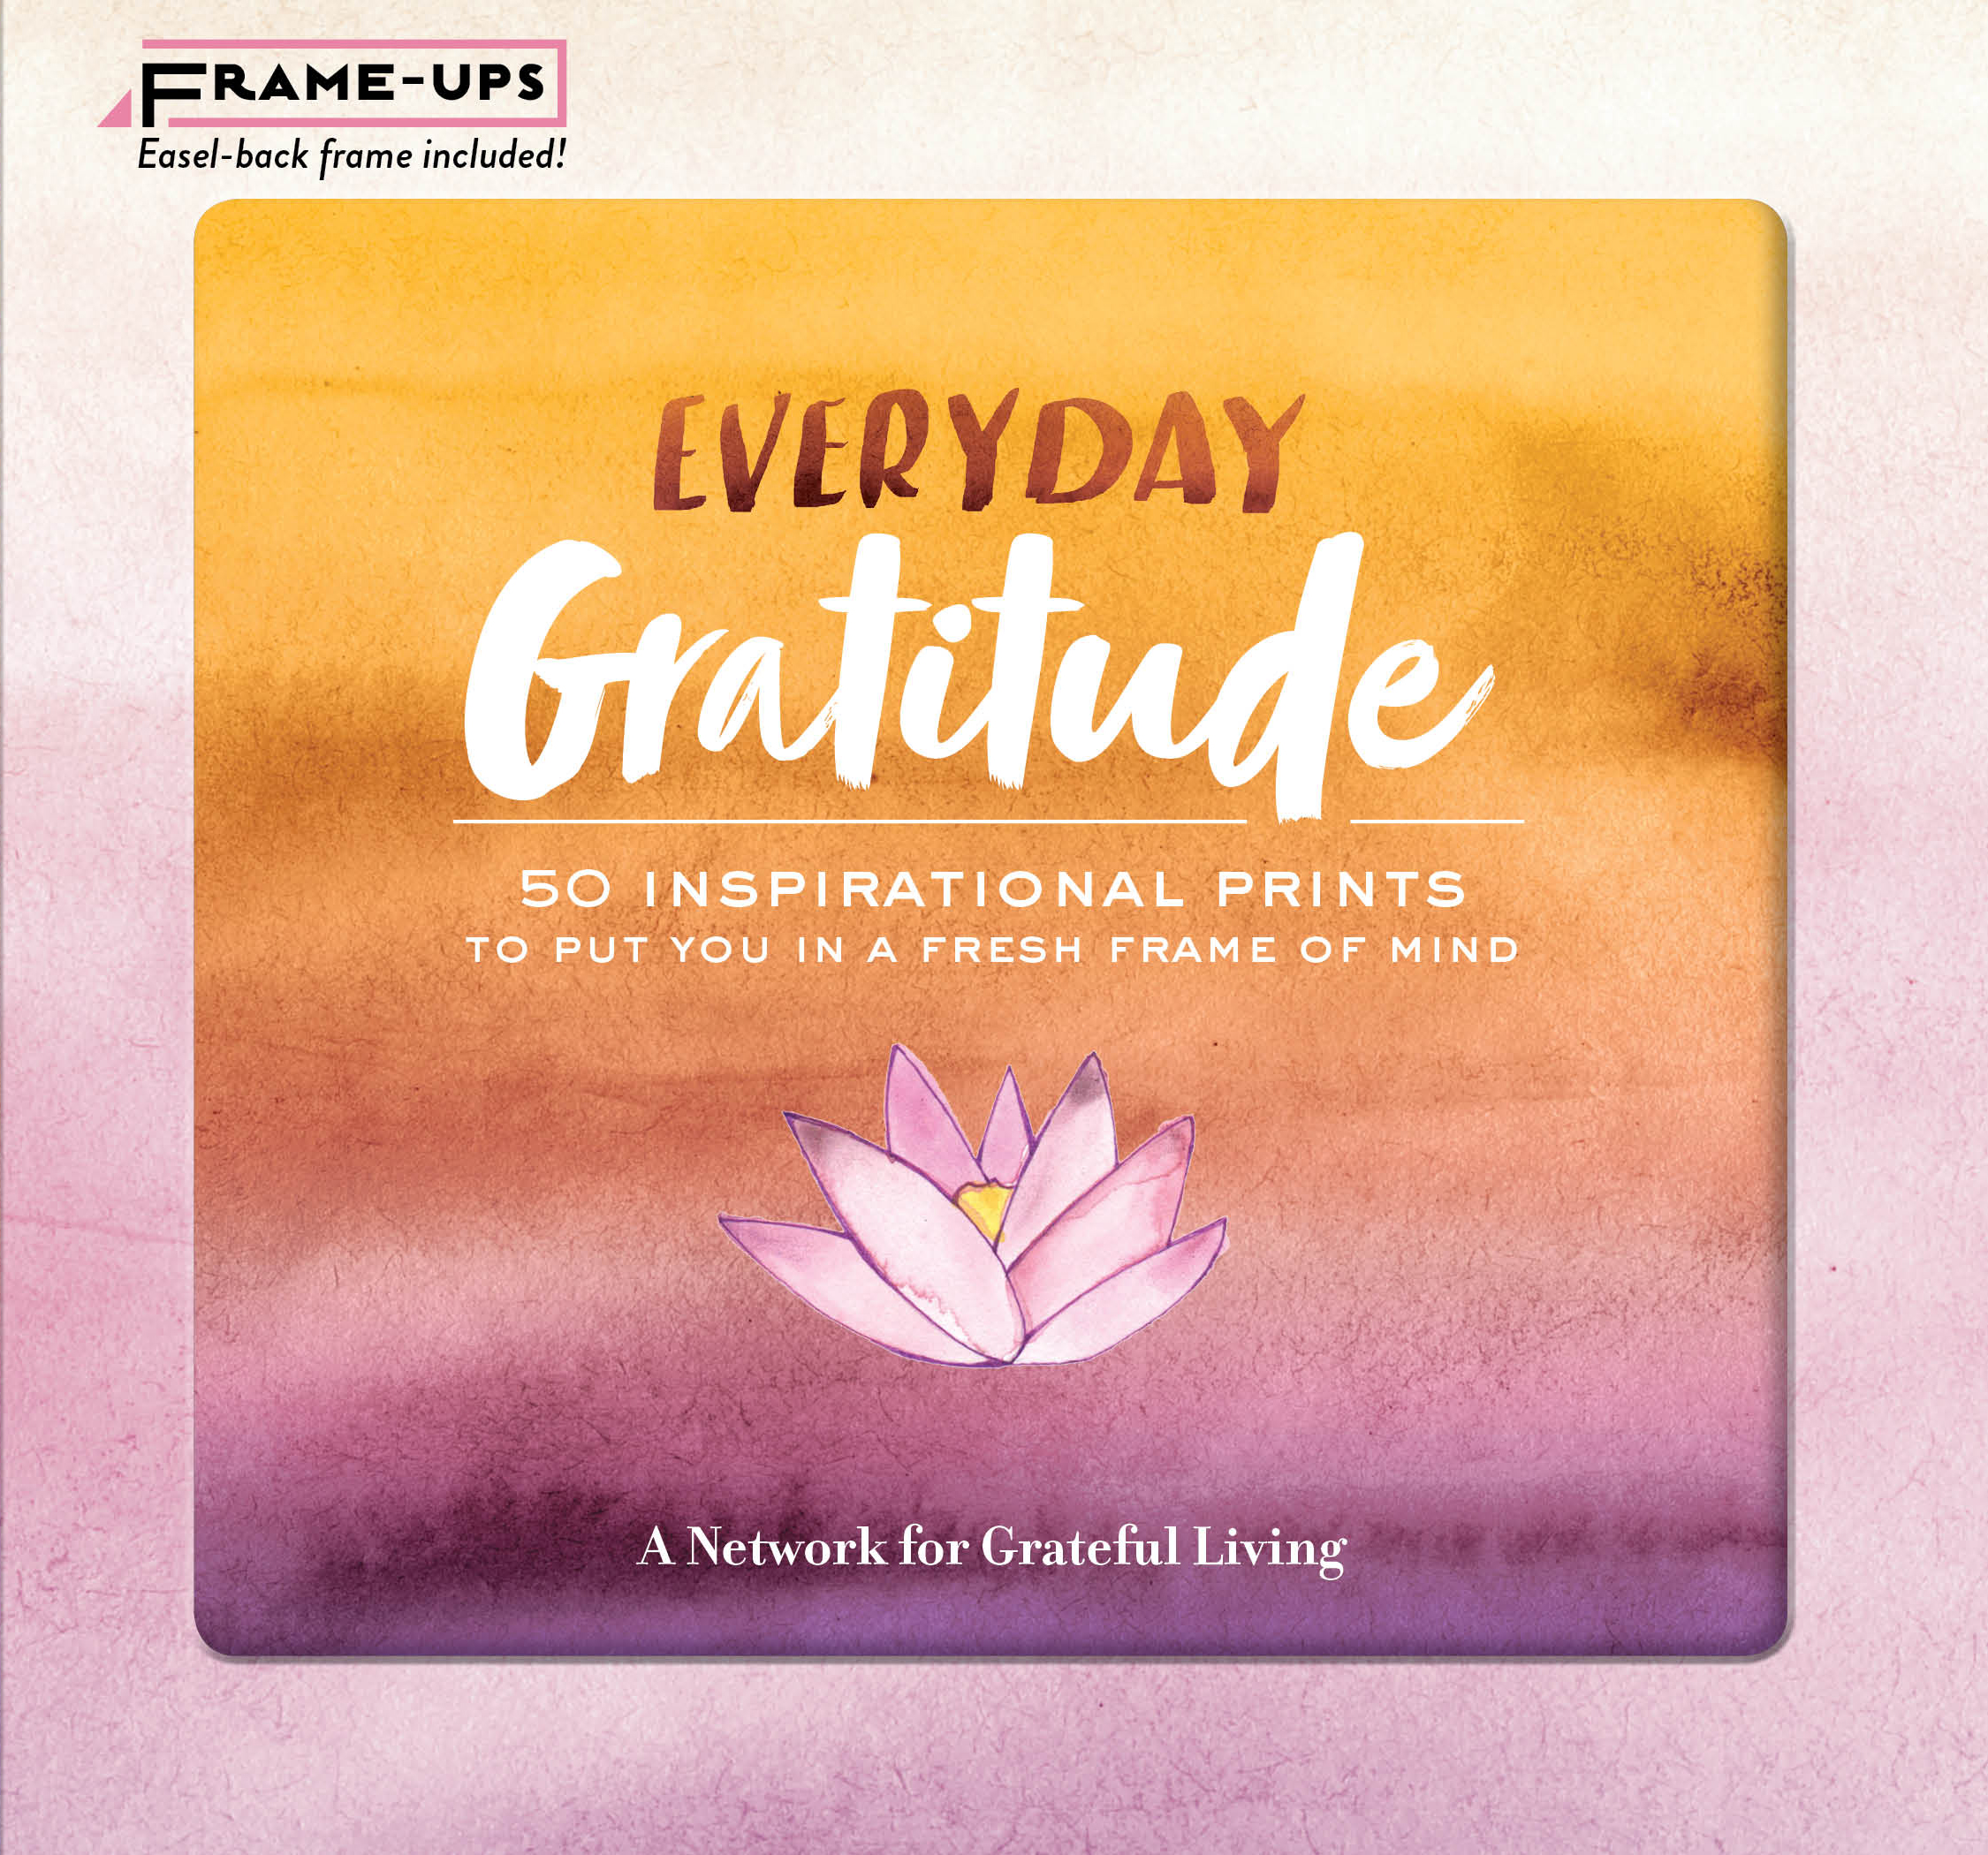 Everyday Gratitude Frame-Ups 50 Inspirational Prints to Put You in a Fresh Frame of Mind - A Network for Grateful Living